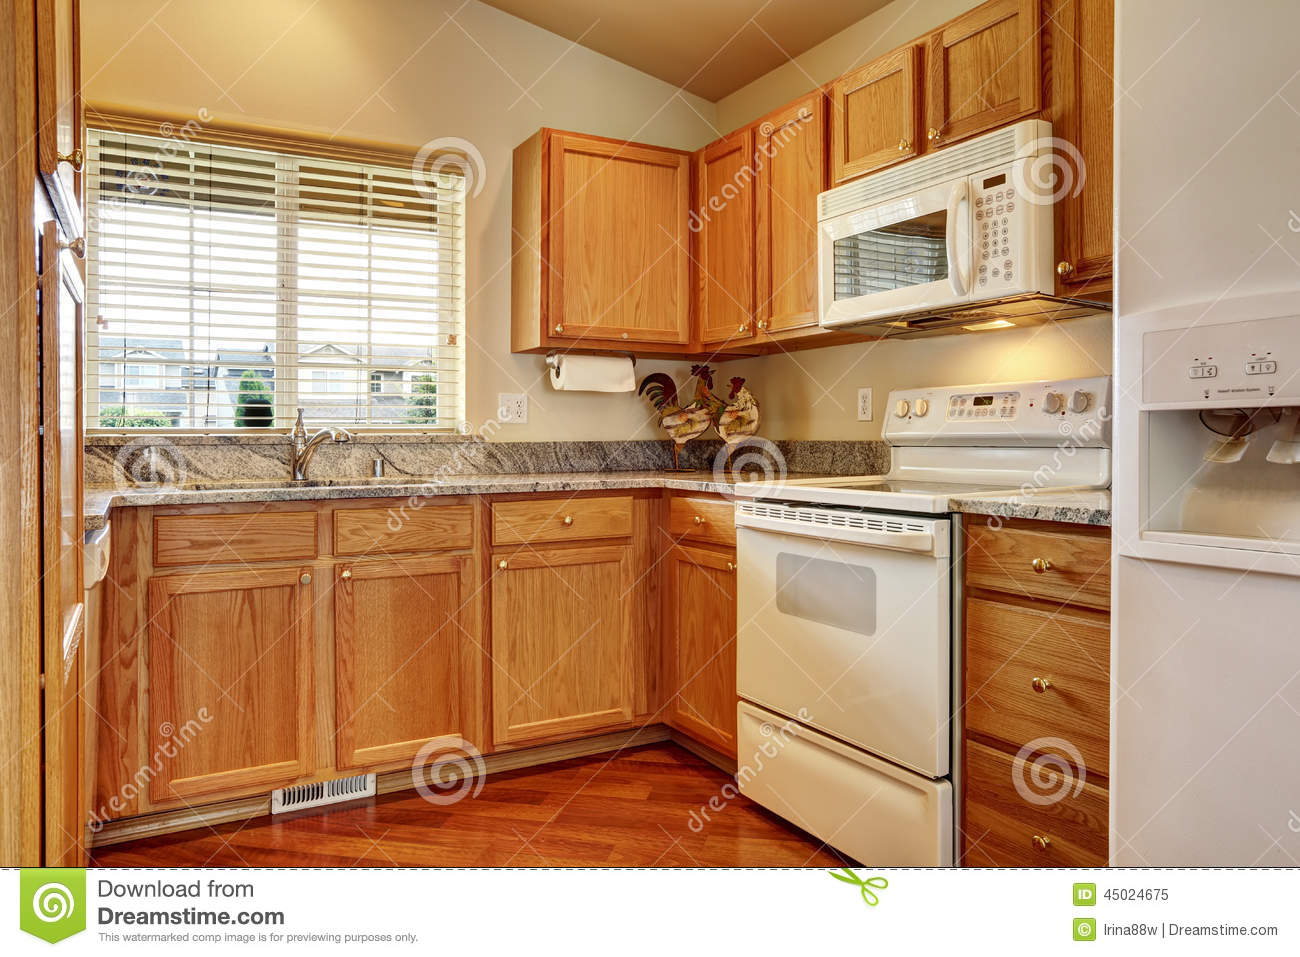 refrigerator for small kitchen cabinets orlando area with white appliances stock image